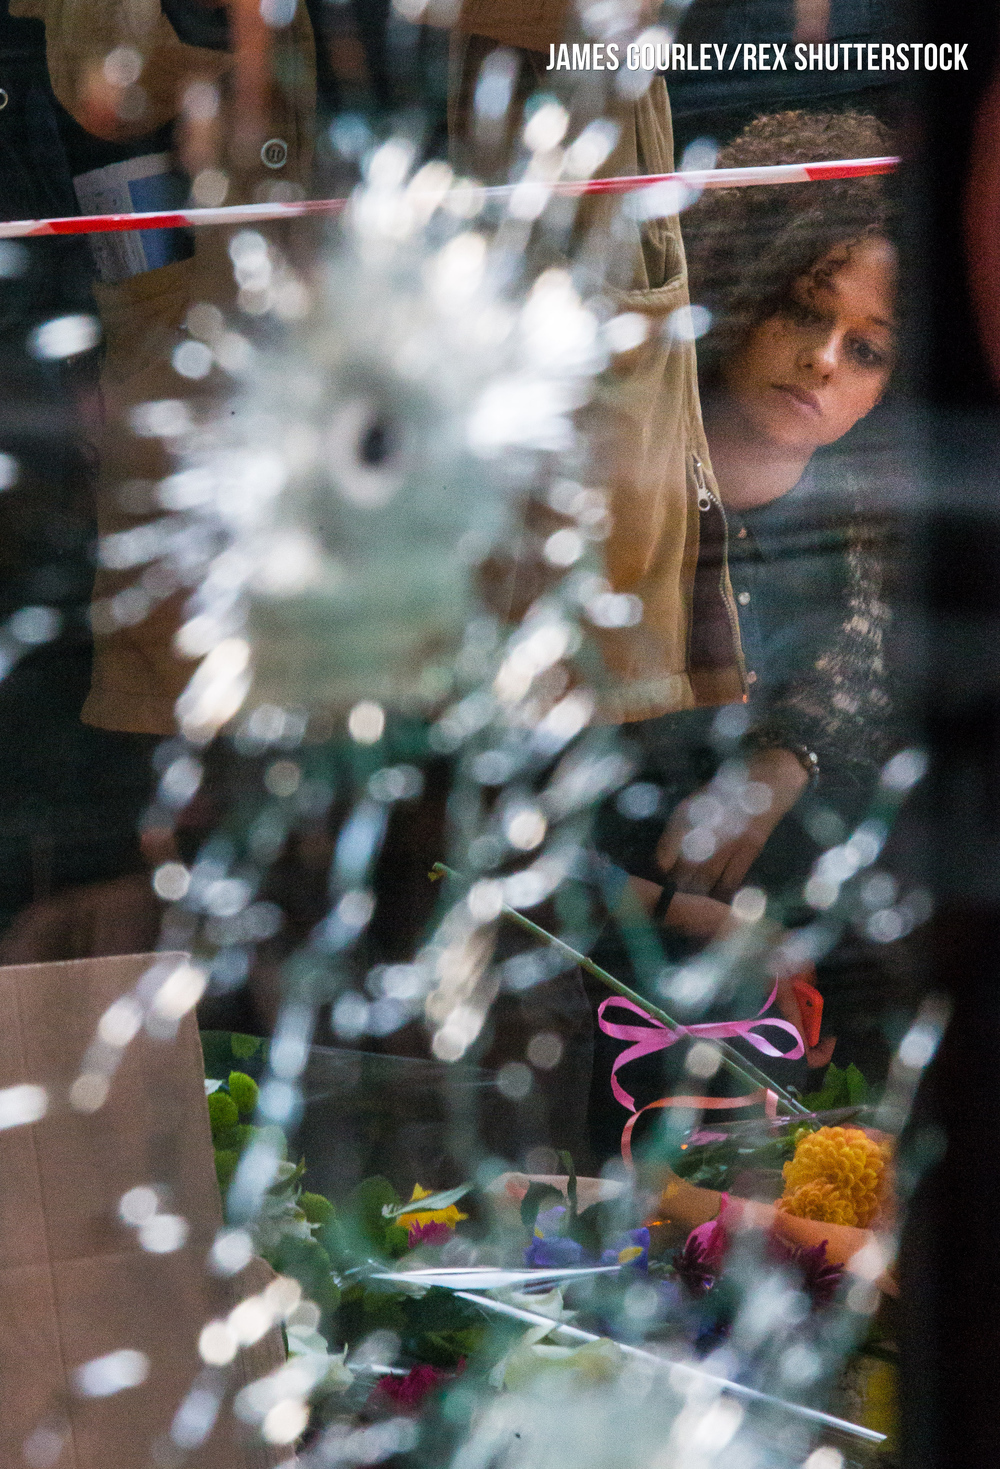 Mourners seen outside Caf� Bonne Biere through windows with bullet holes